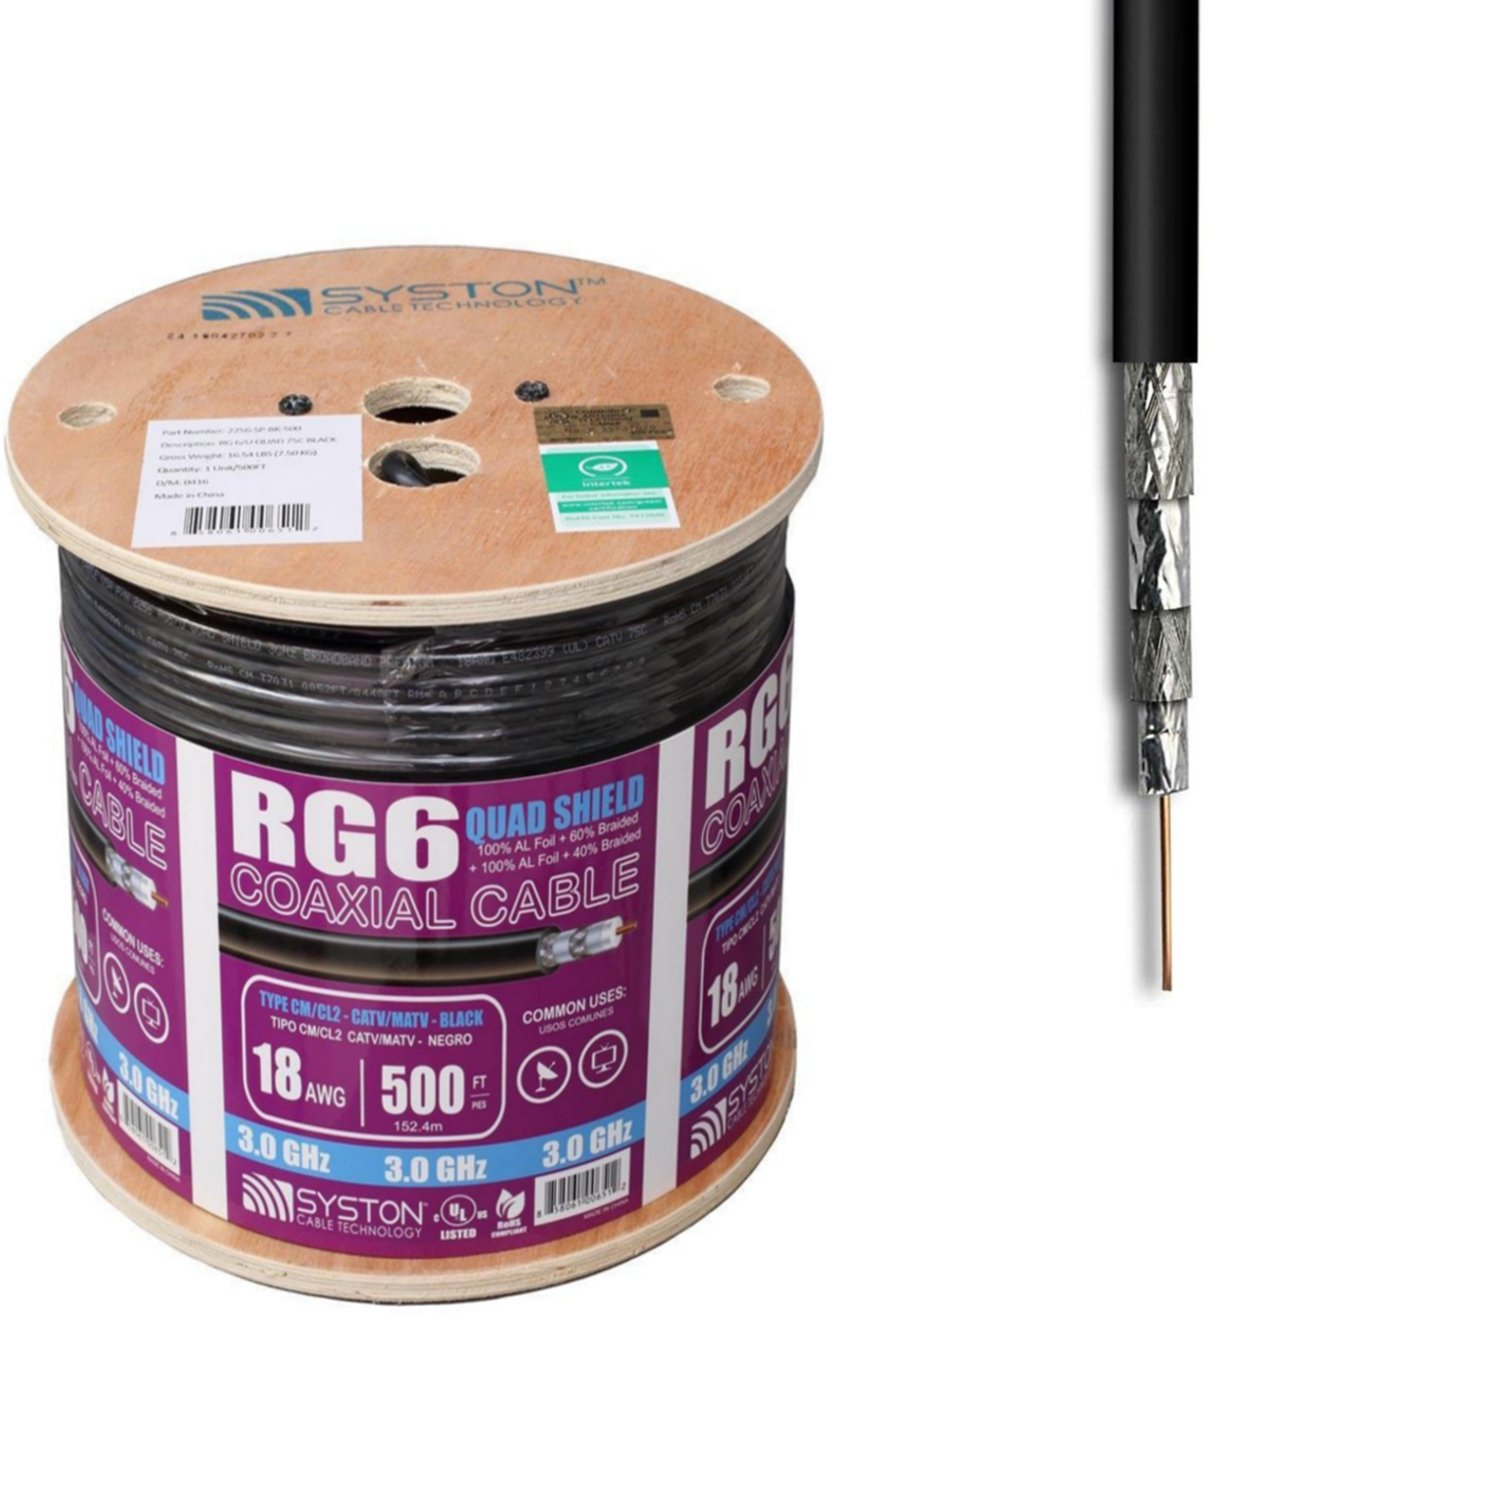 Amazon.com: RG6 Quad Shield 500 ft. Negro cm Cable Coaxial ...